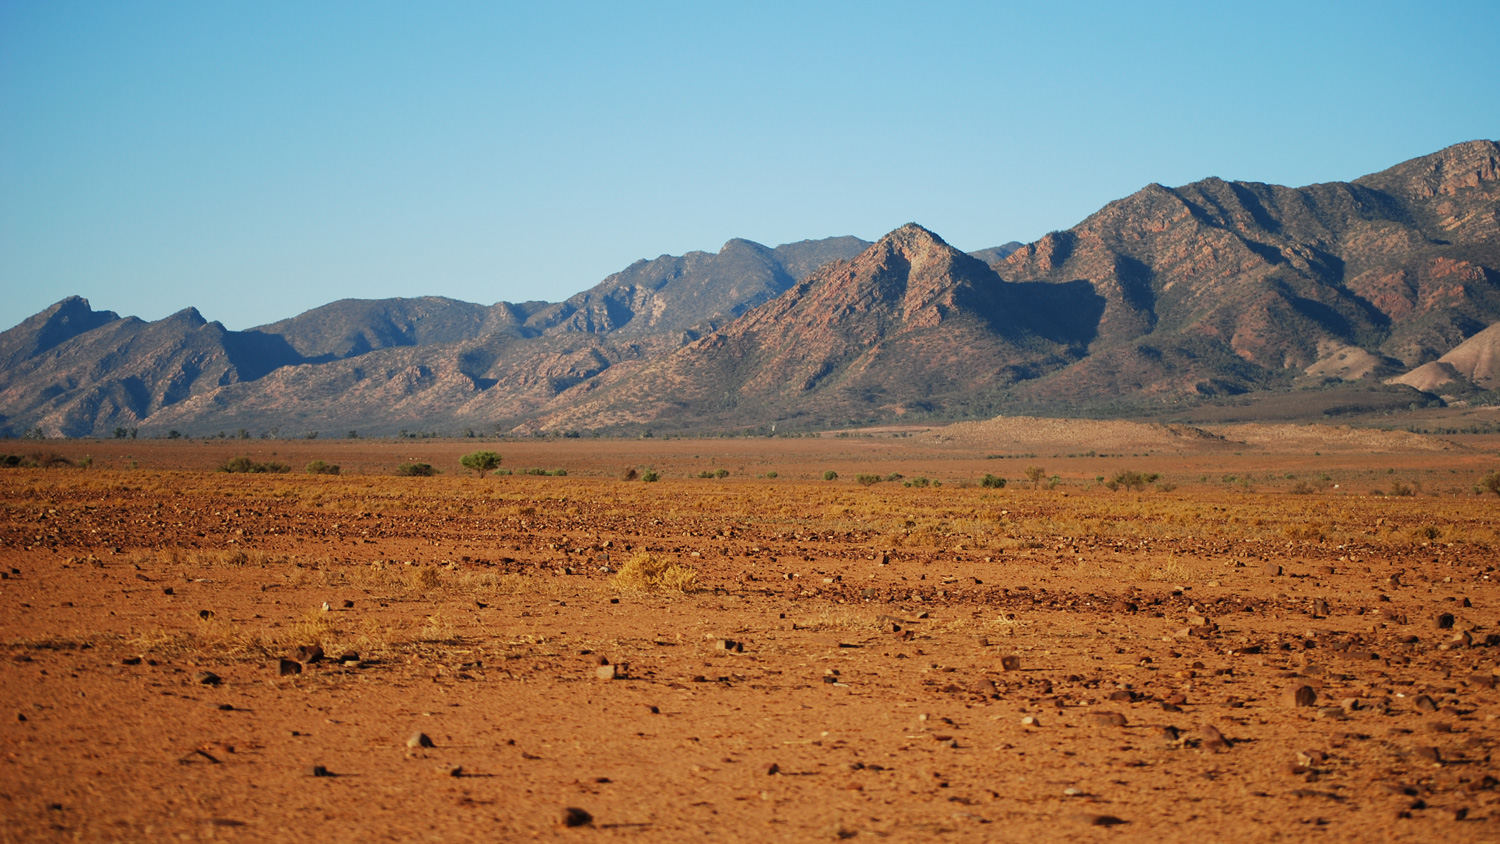 The Australian continent is largely covered by transported sediments (foreground) that have been eroded over millions of years from elevated rock sequences nearby (background), as shown here in the Flinders Ranges, South Australia example. Geologists must search below these cover rock sequences for mineral deposits using expensive drilling and geophysical techniques that are available today. Image:  Peripitus .